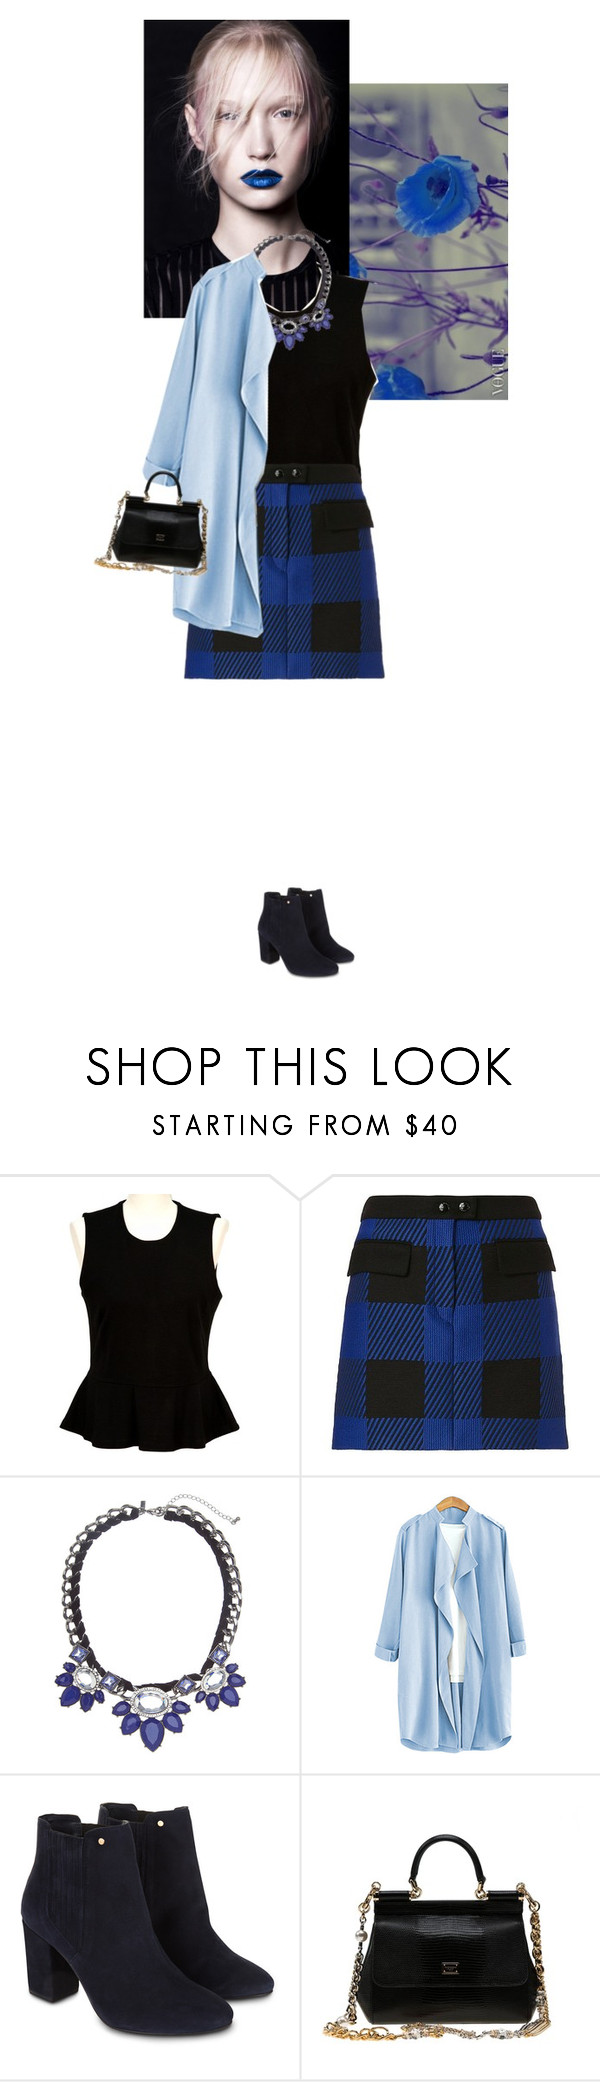 """""""BLUE"""" by doris-knezevic ❤ liked on Polyvore featuring French Connection, rag & bone, Lane Bryant, Monsoon and Dolce&Gabbana"""